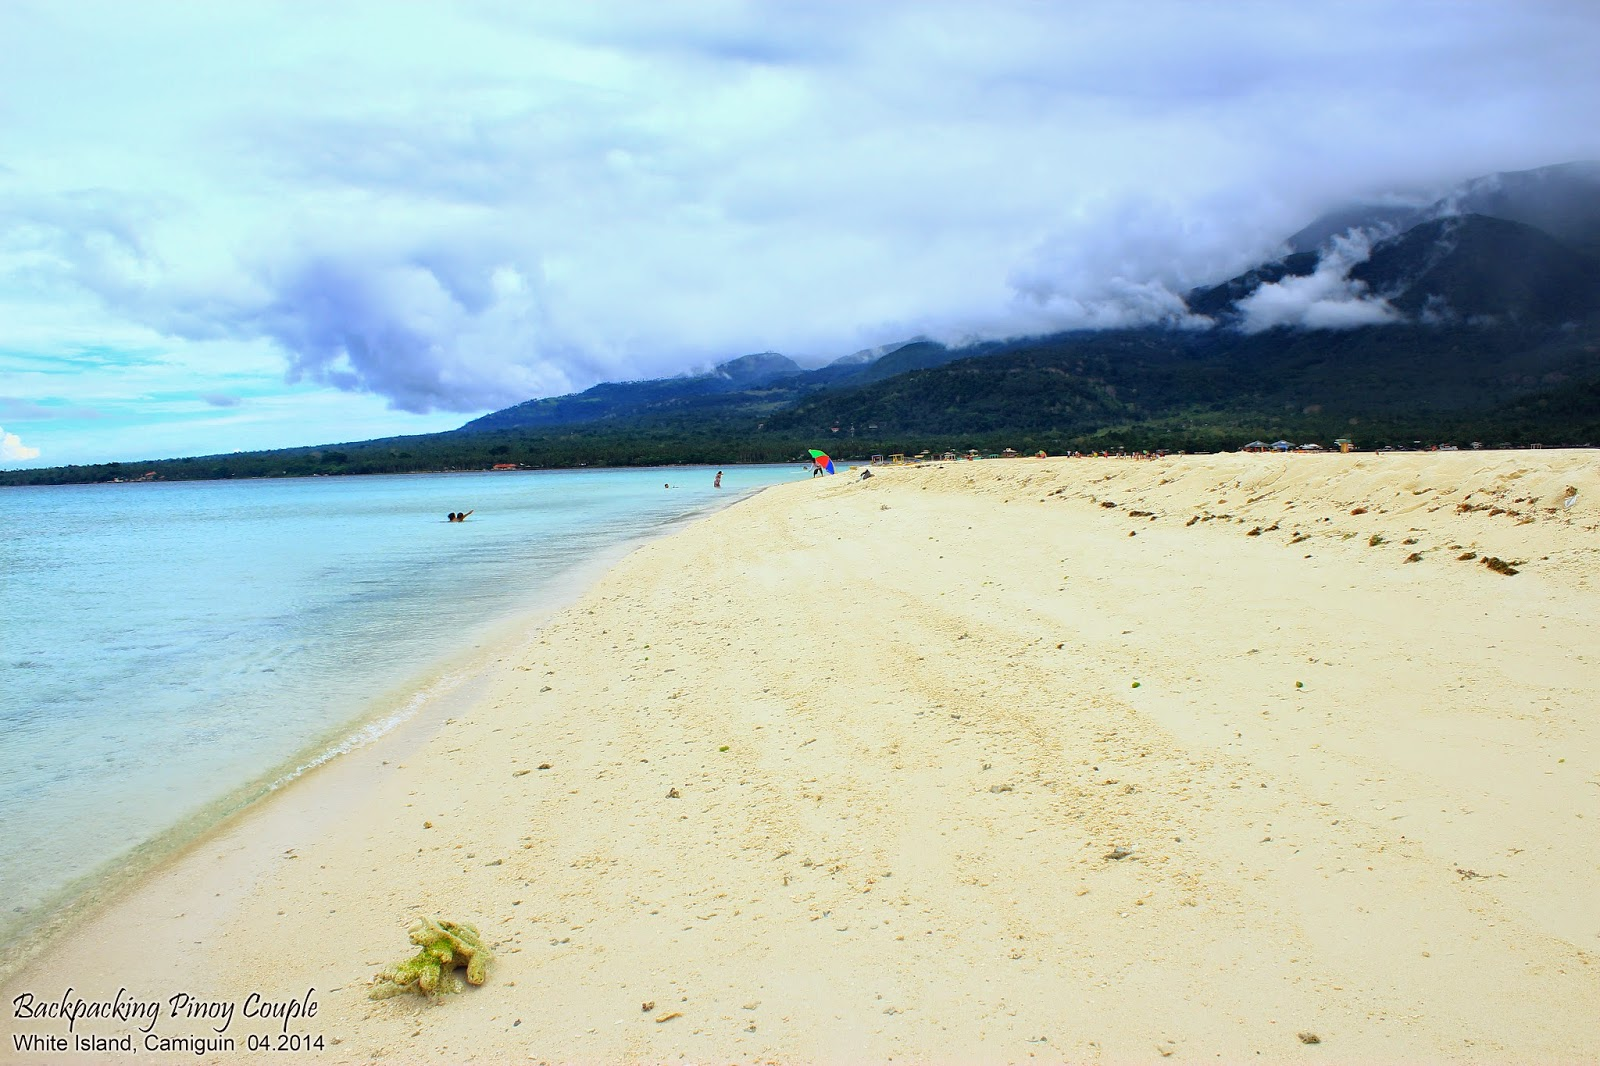 Backpacking Pinoy Couple, Backpacking Philippines, Northern Mindanao, Philippine travel, Camiguin, How to go to Camiguin, what to do in camiguin, where to go in camiguin, Camiguin roadtrip, road trip, Camiguin Itinerary, motor riding in Camiguin, White Isand